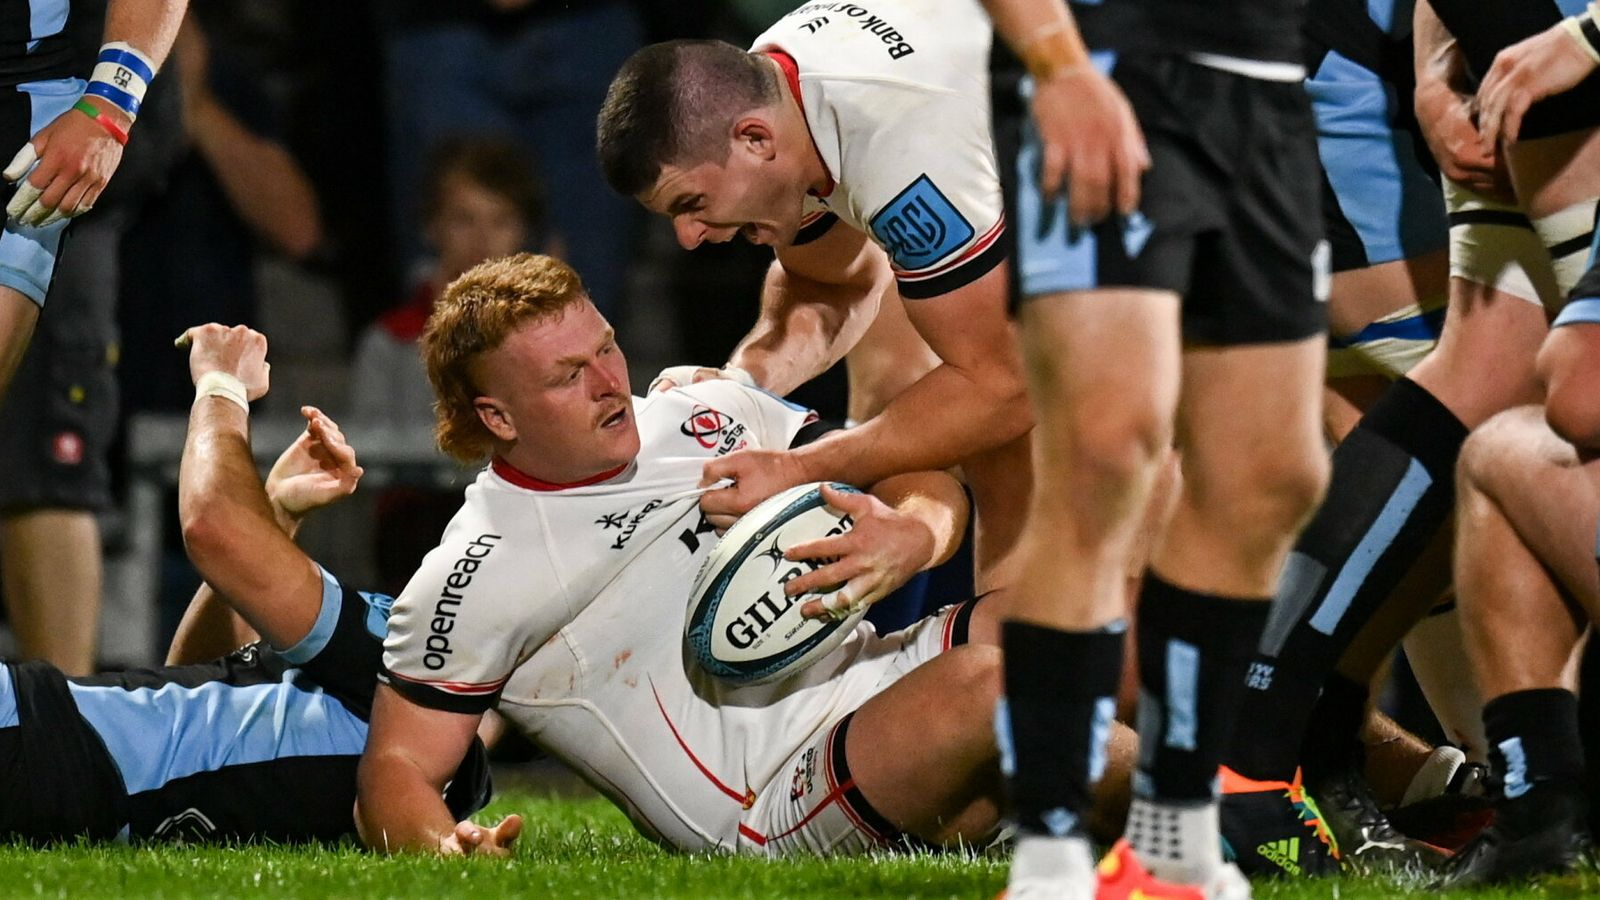 United Rugby Championship: Lions hold off Zebre fightback; Cardiff Blues and Ulster triumph